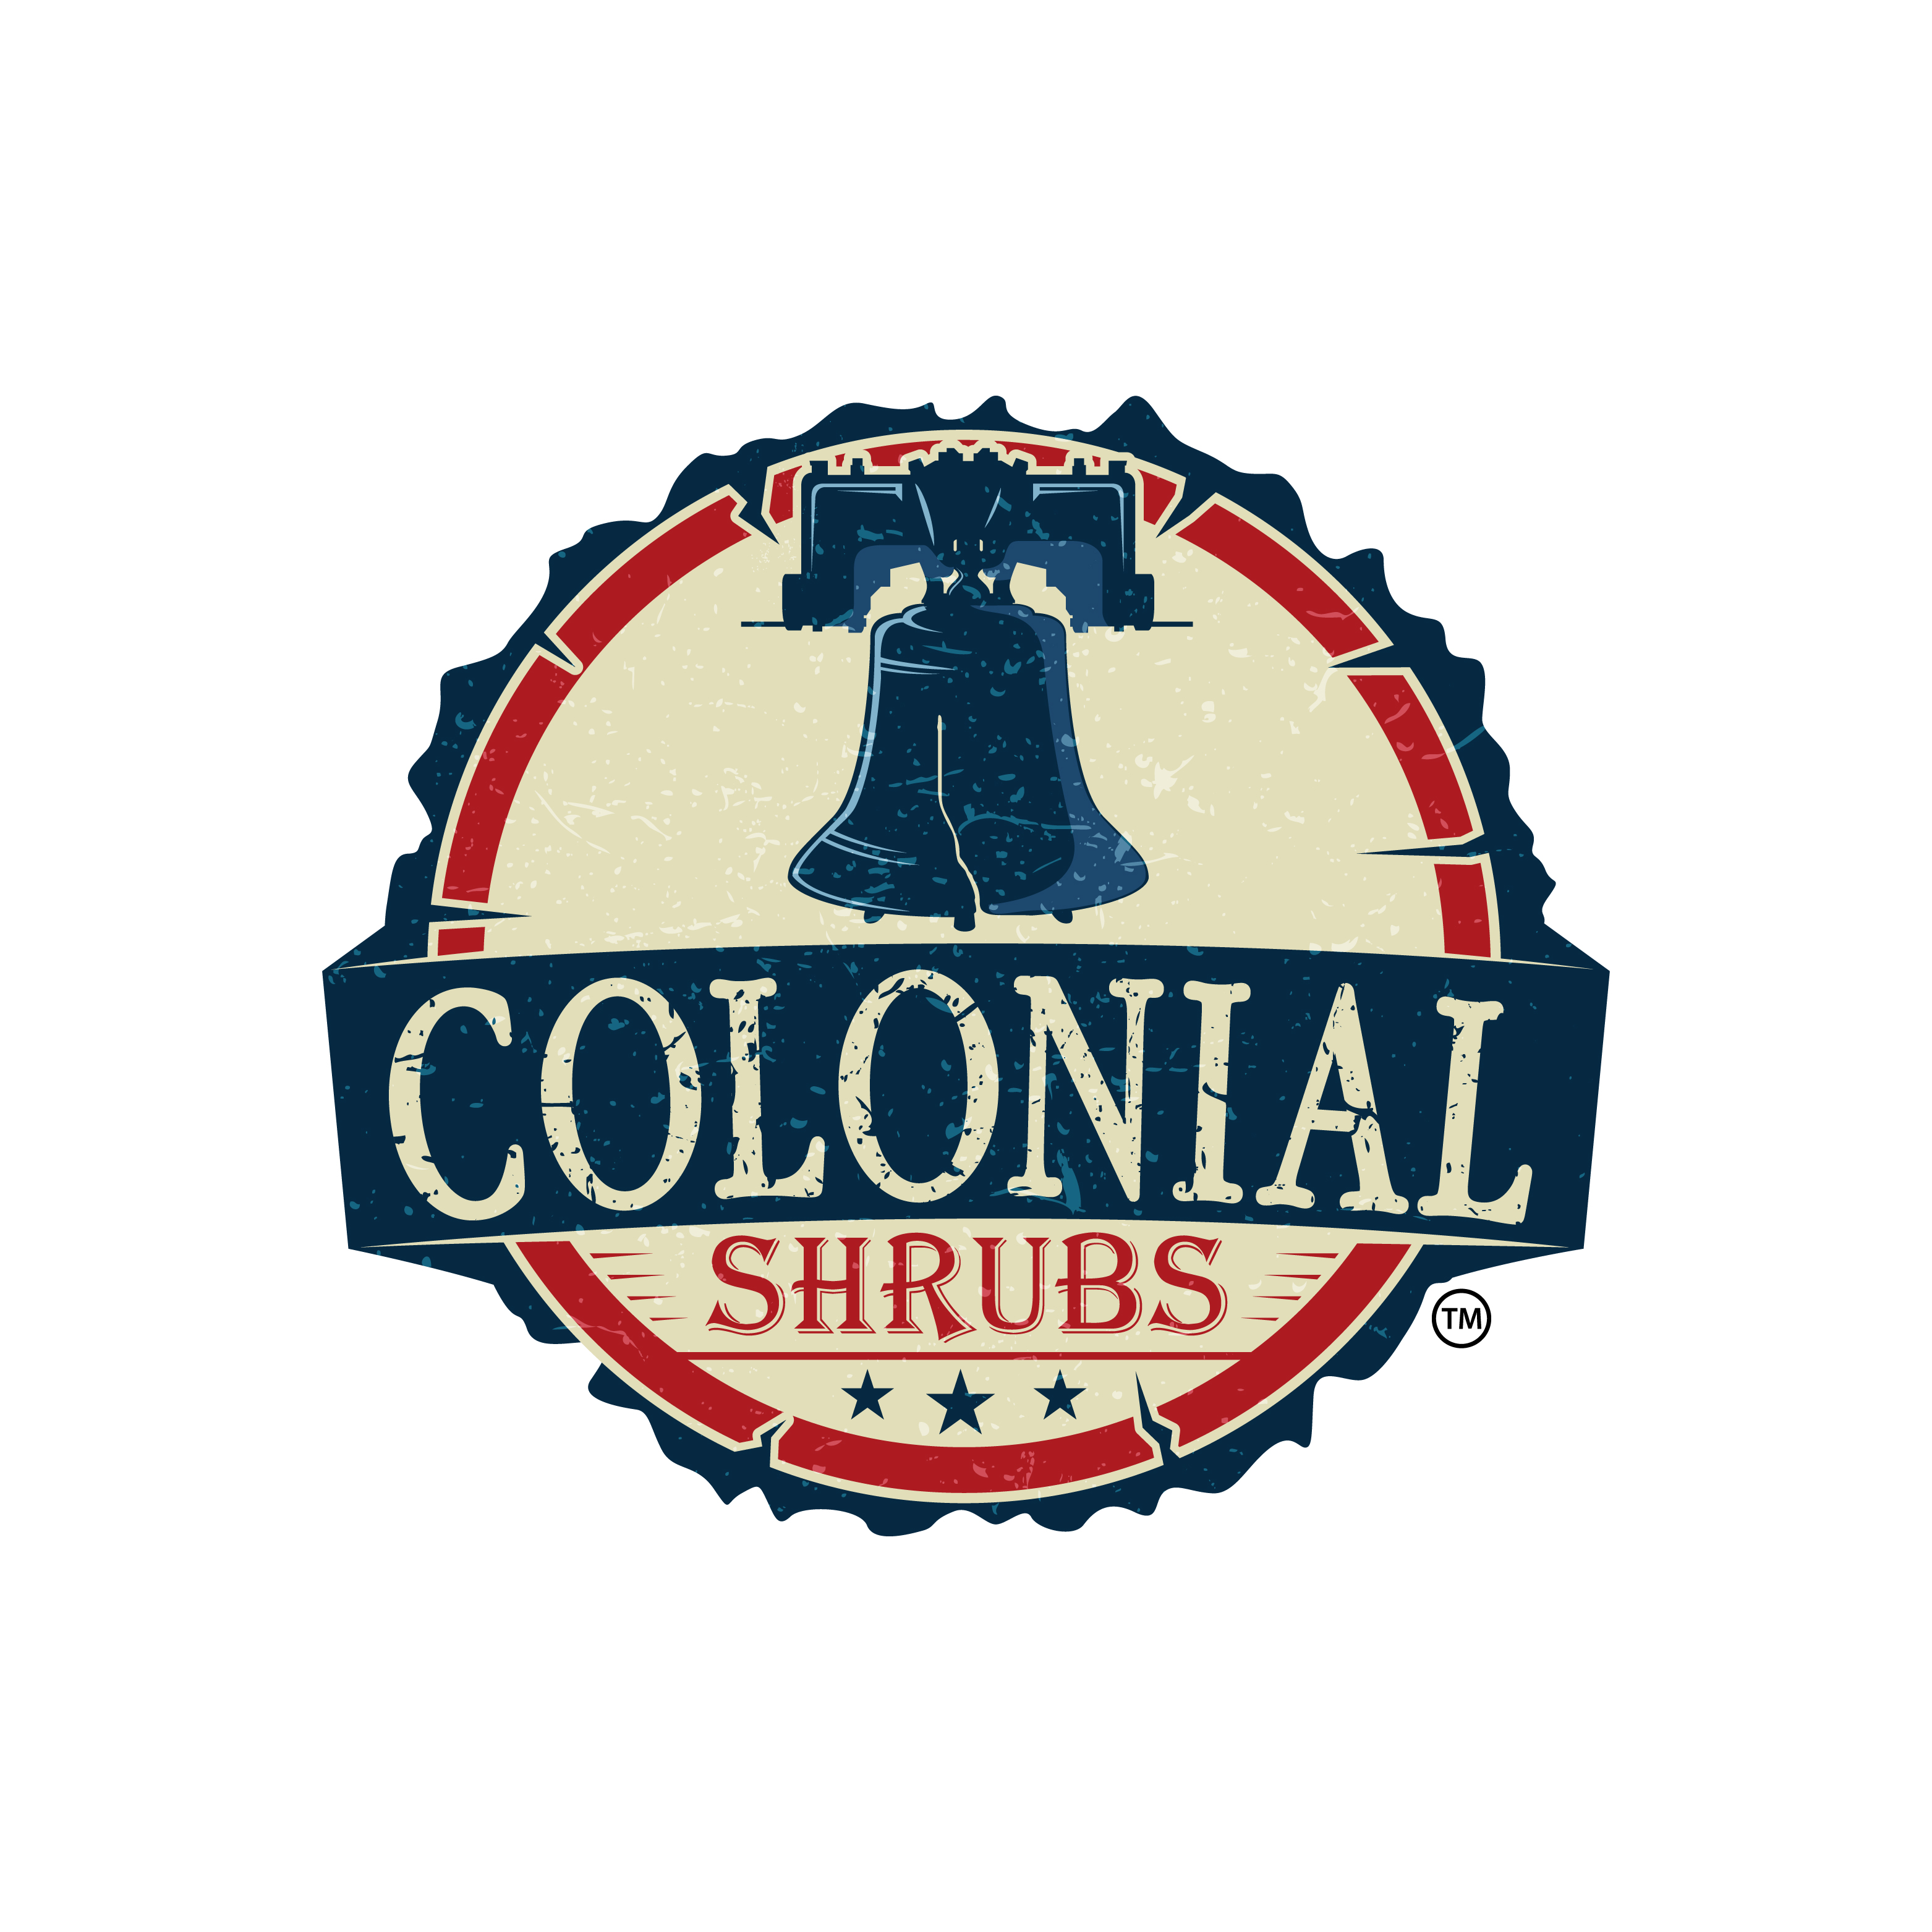 Colonial Shrubs image